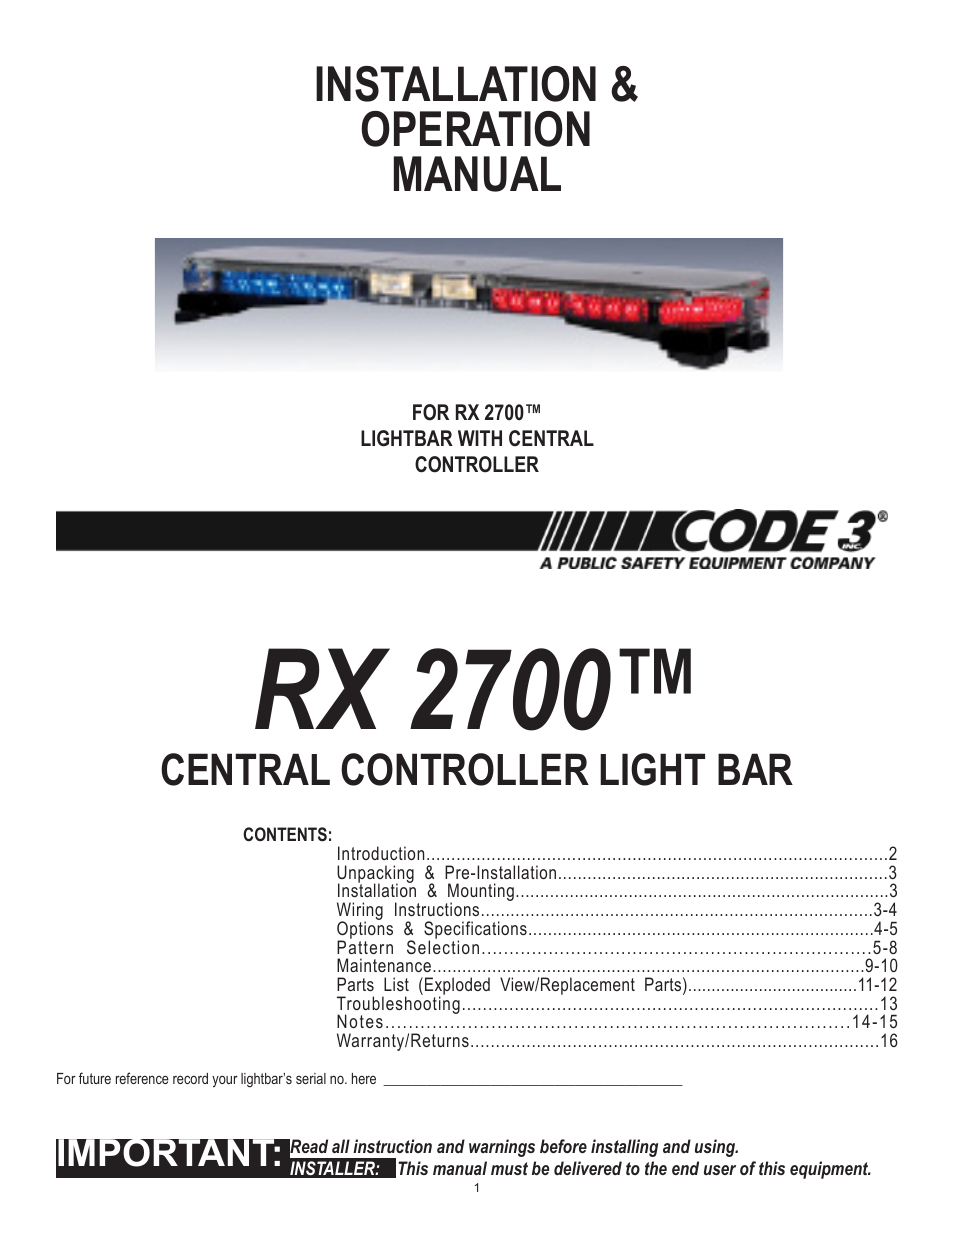 Code 3 Led X 2100 Wiring Diagram - Hand Warmer Wiring Diagram Arctic Cat  Snowmobile for Wiring Diagram SchematicsWiring Diagram Schematics